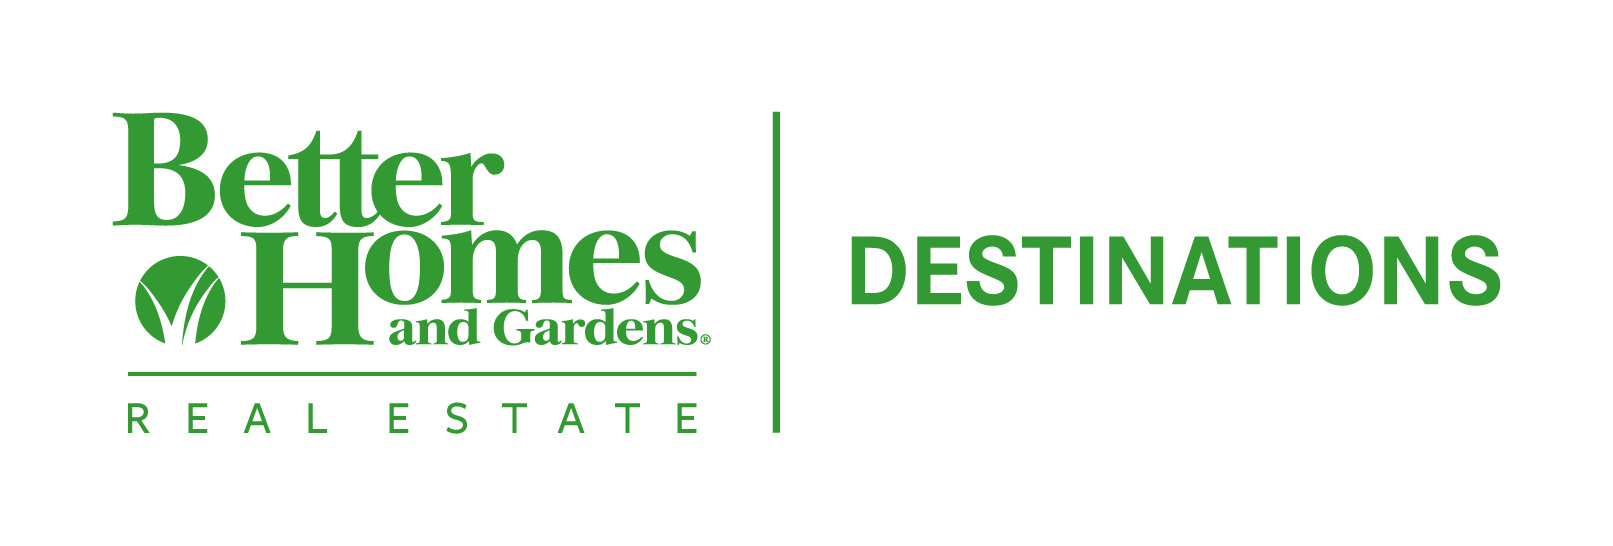 Better Homes and Gardens Real Estate / Destinations